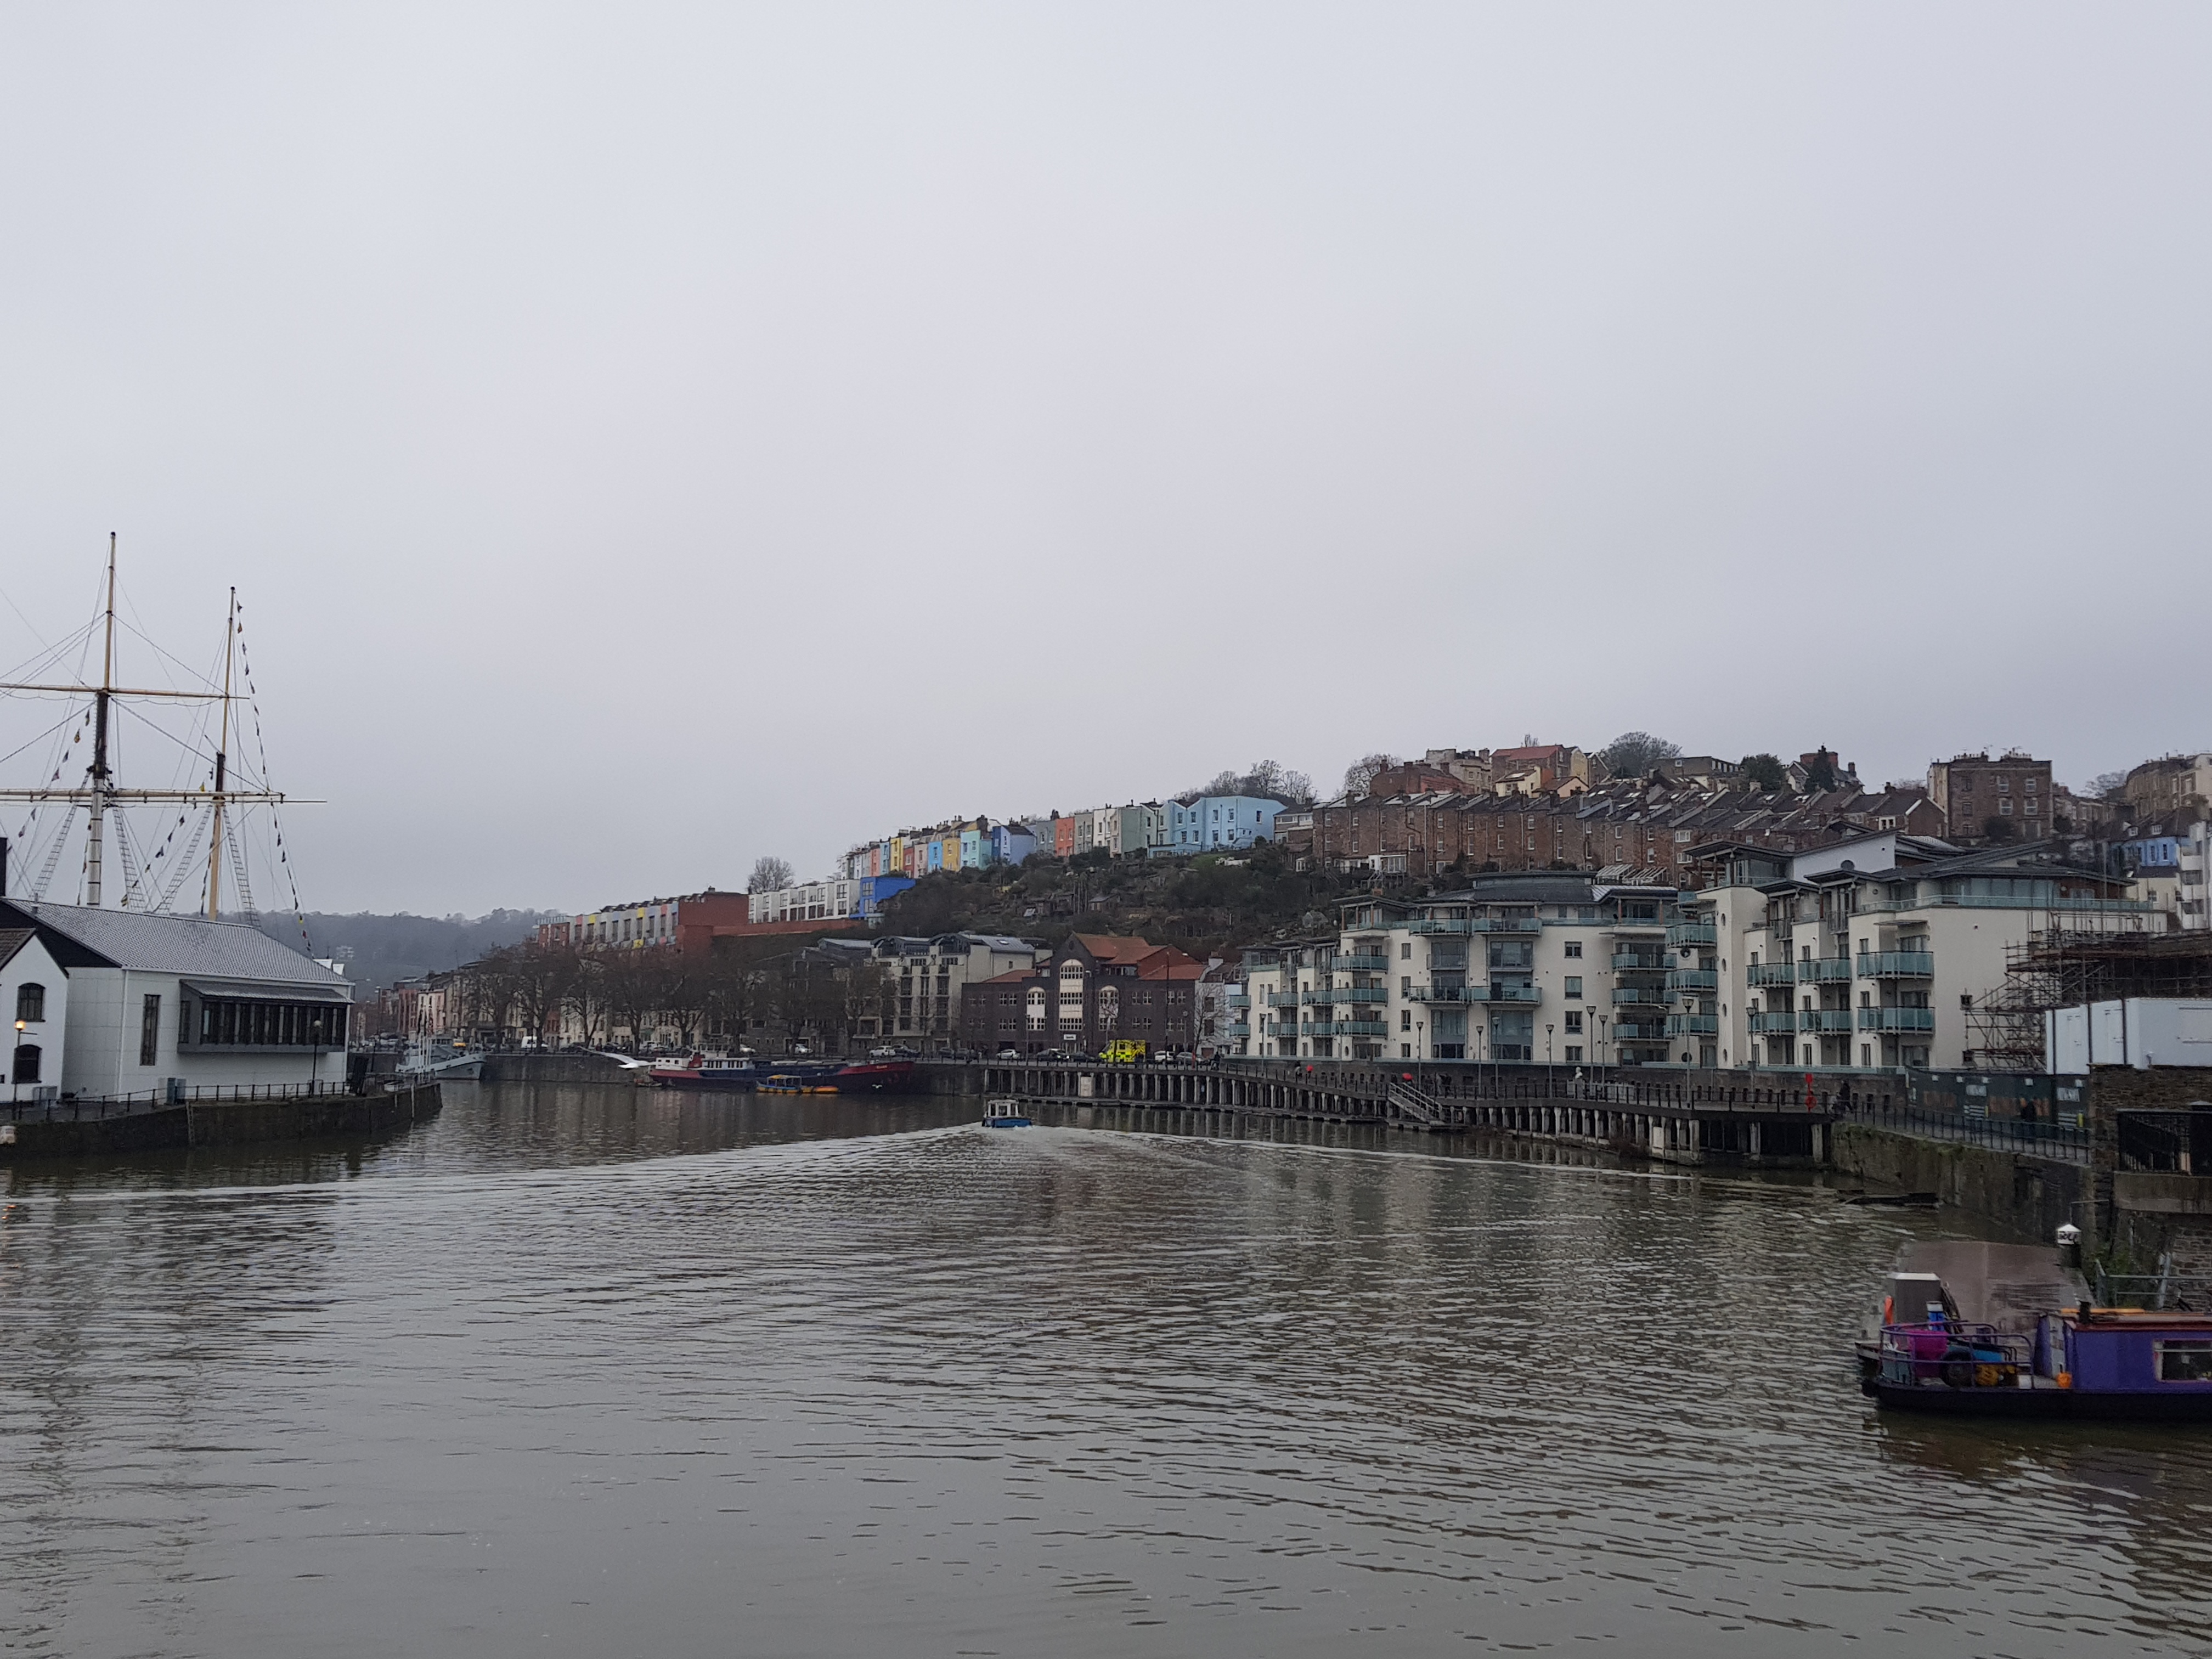 Bristol Harbour - a beautiful backdrop for a run, even in bad weather